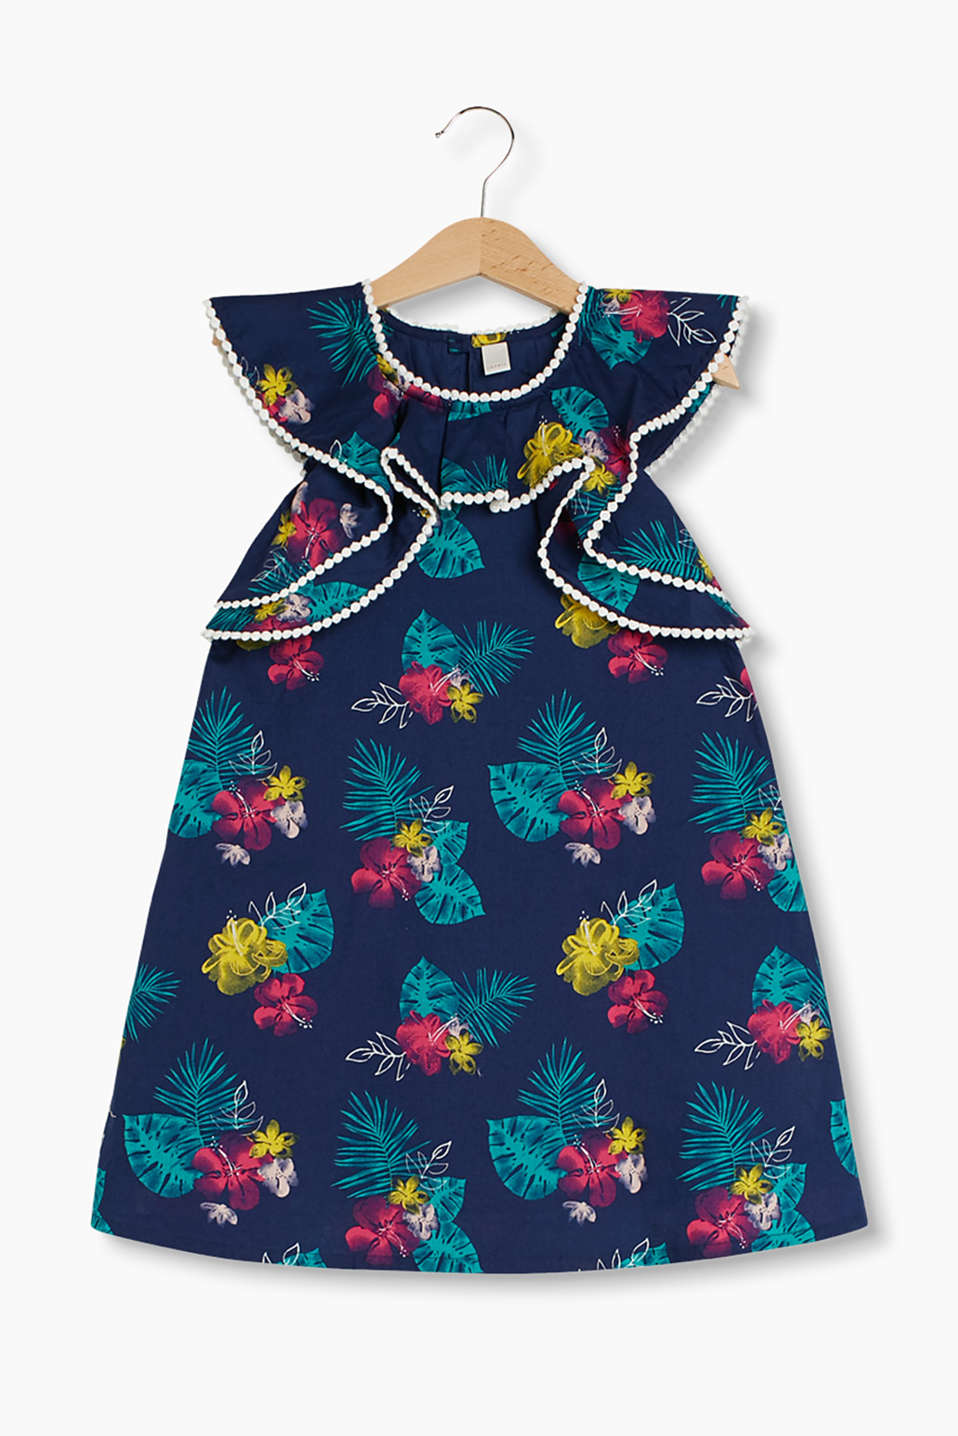 Amazingly adorable cotton dress with a tropical all-over print and frills with a crocheted edge